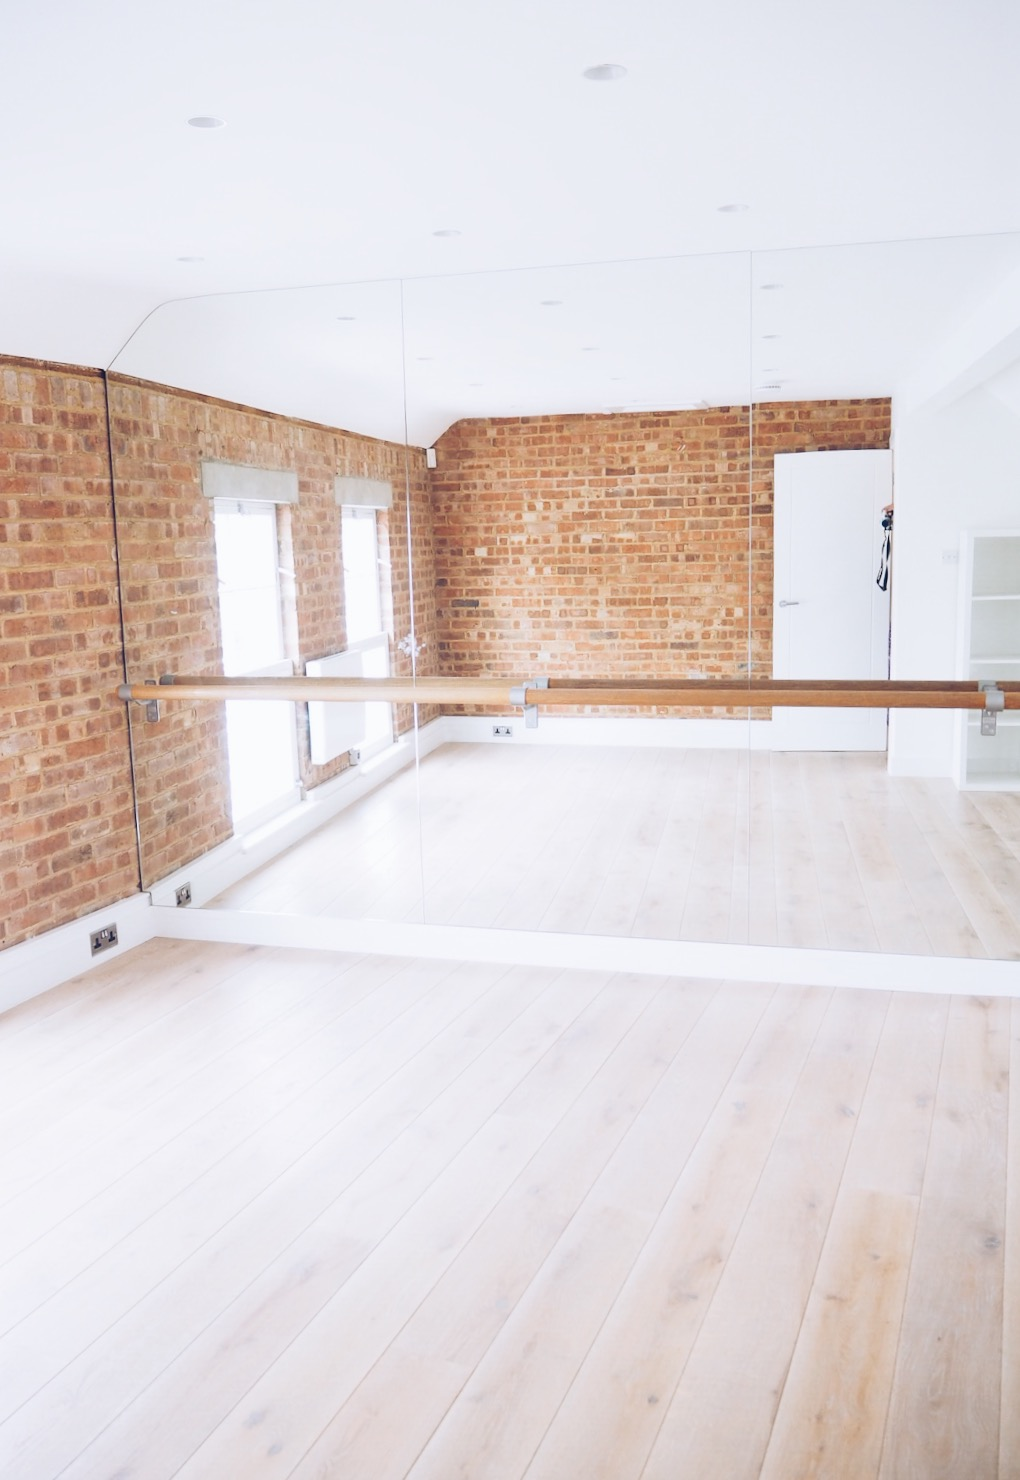 THE STUDIO   yoga, pilates, barre, PT - Above the shop we have a small, light + bright studio ideal for yoga, pilates, barre and PT classes.Bookings are made directly with the instructors so to find out what classes are running and when please use the contact details below:YOGA:Tanya : yogabytanya@hotmail.comPILATES:Emily: emsbray@hotmail.comPT:Louisa: louisa@bylouisa.co.uk